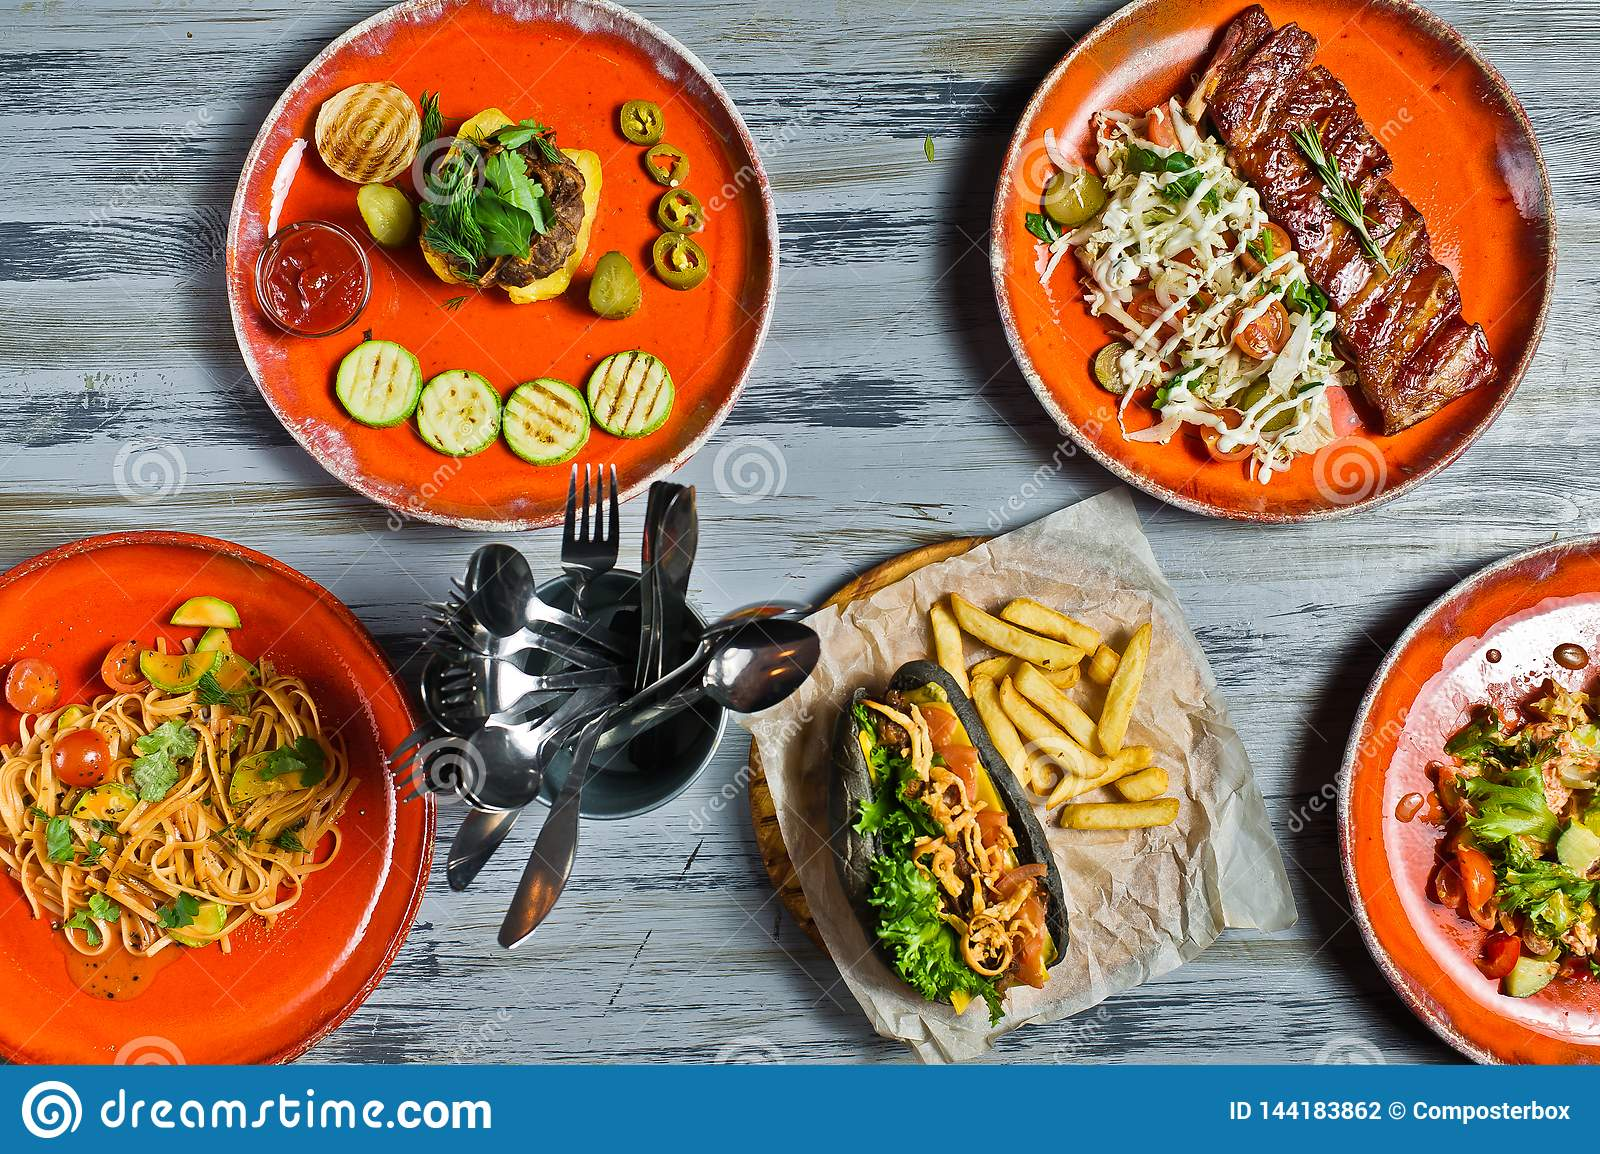 Buffet Food Grill Meat Lunch Restaurant Menu Banquet Concept Hot dog, barbecue pork ribs, steak, Carbonara paste and crab salad.